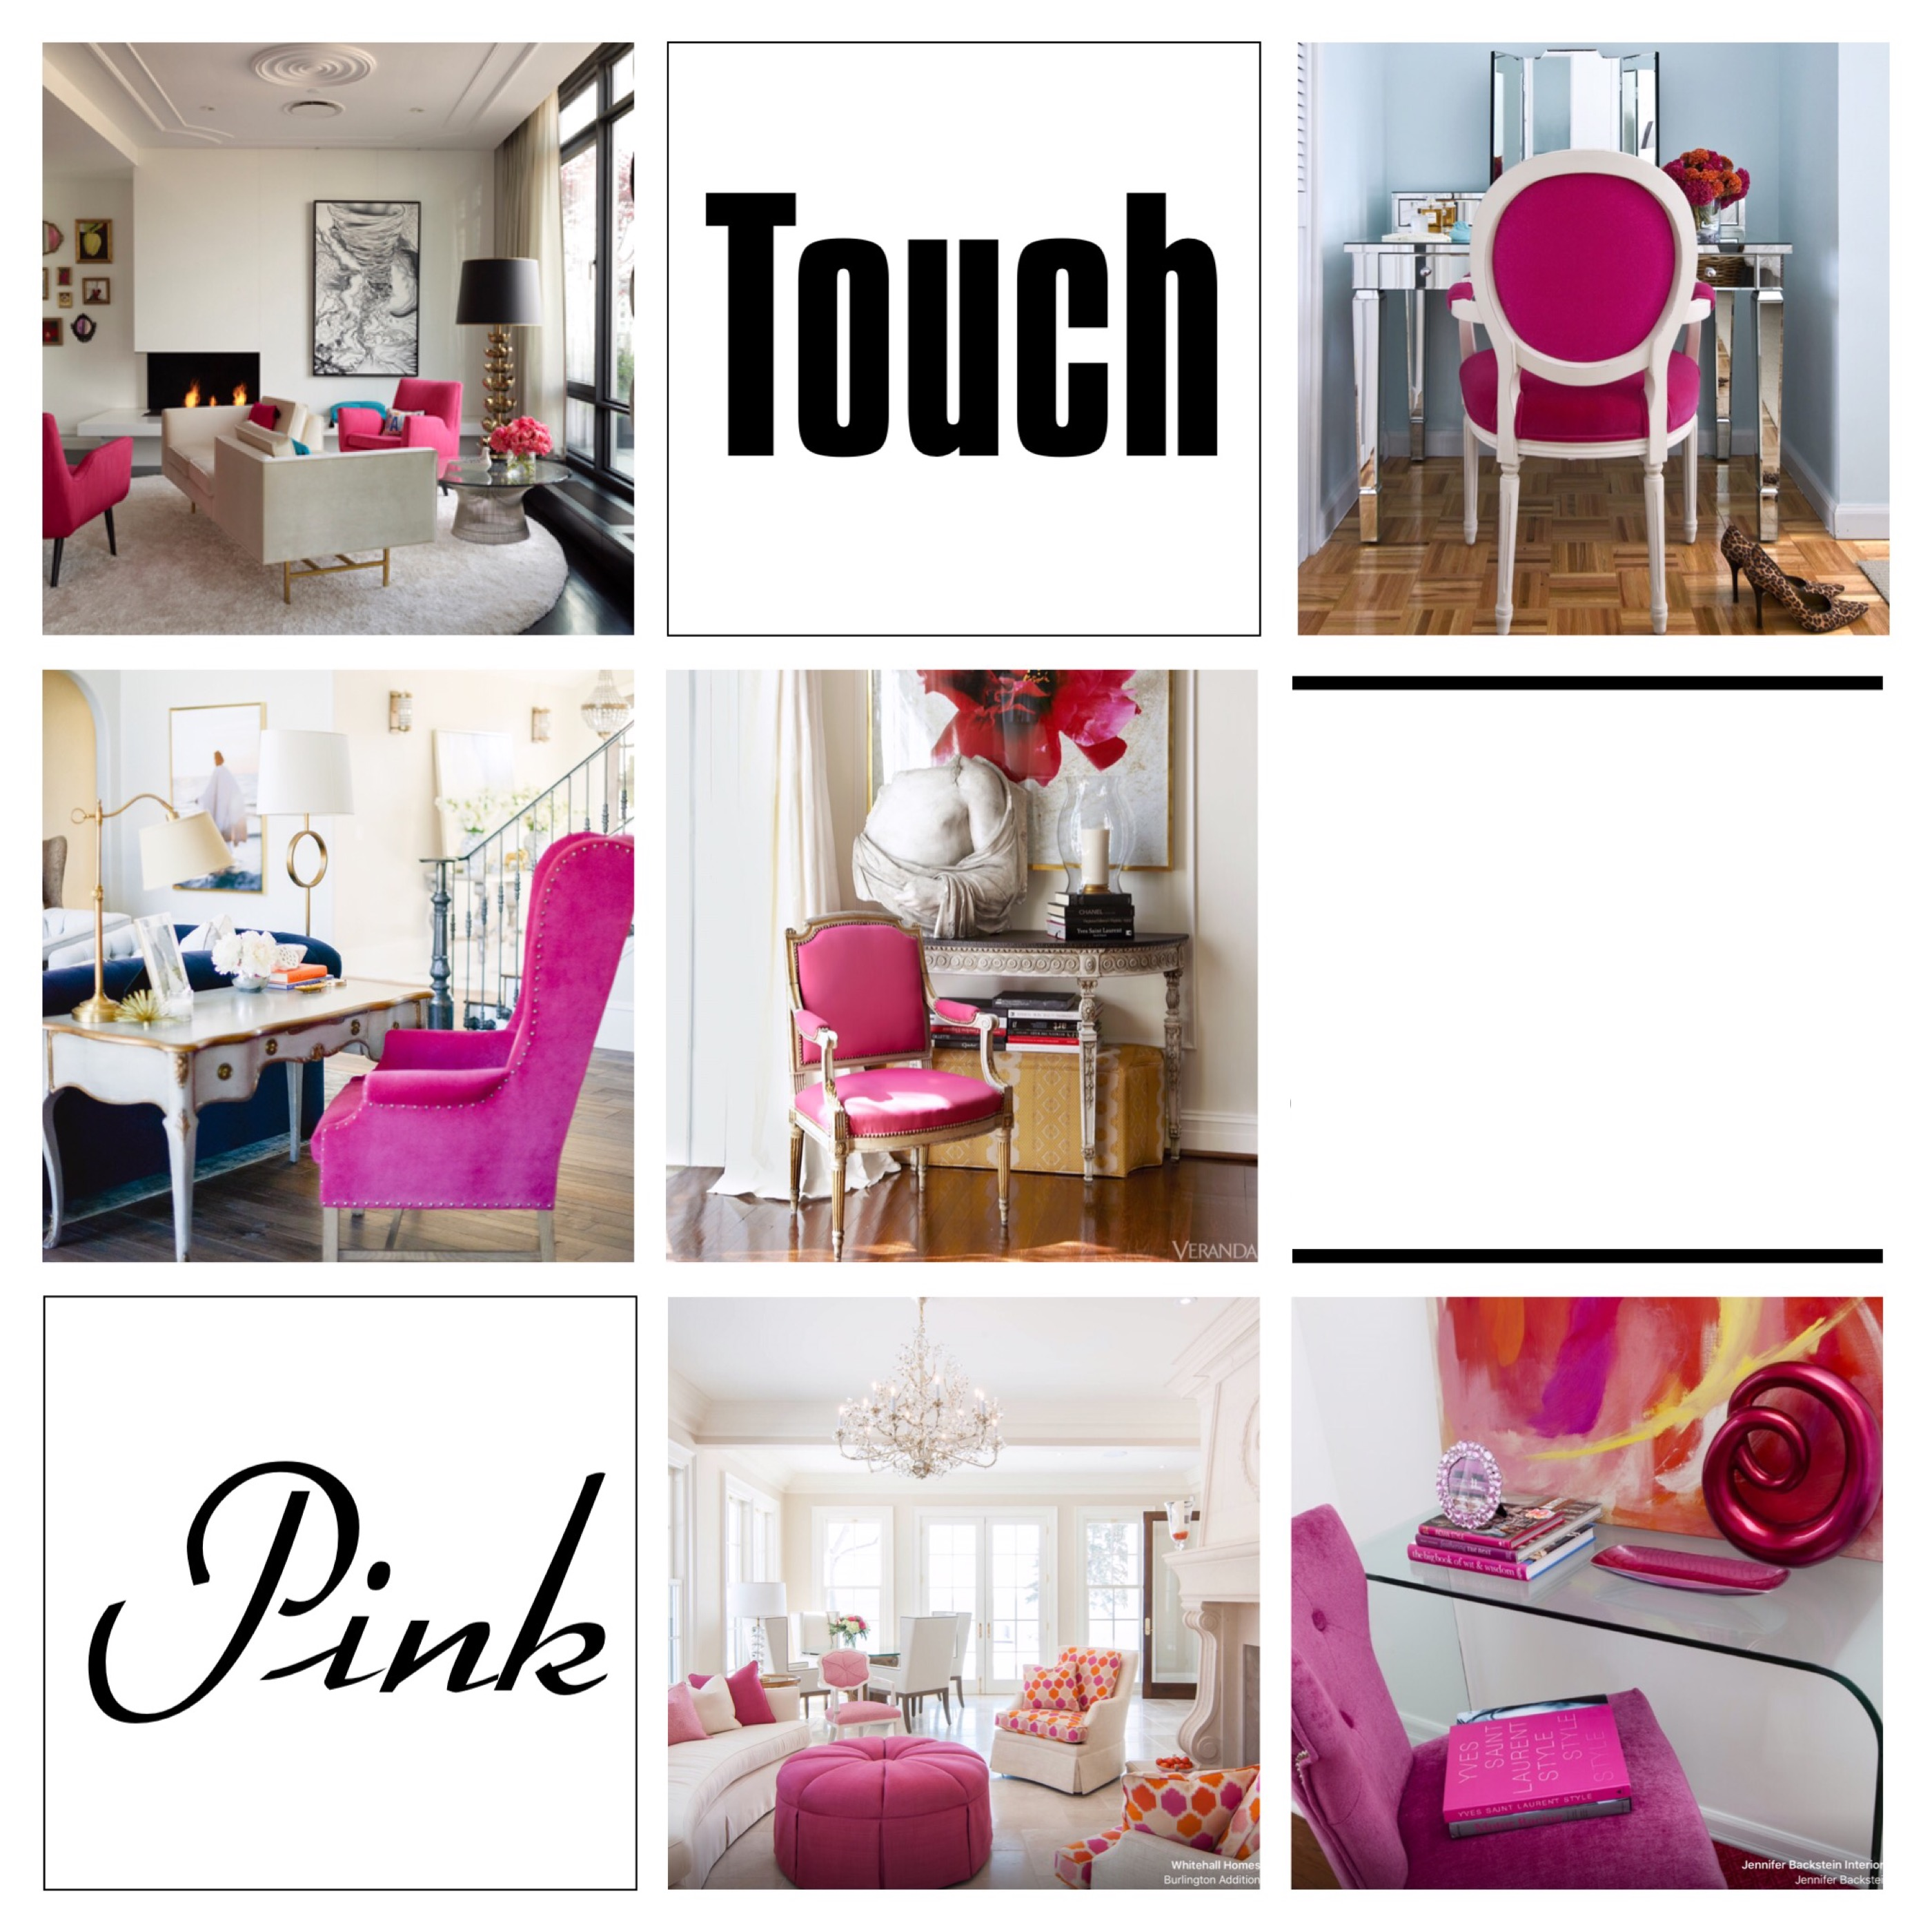 Add a subbtle touch of pink for a glamorous home